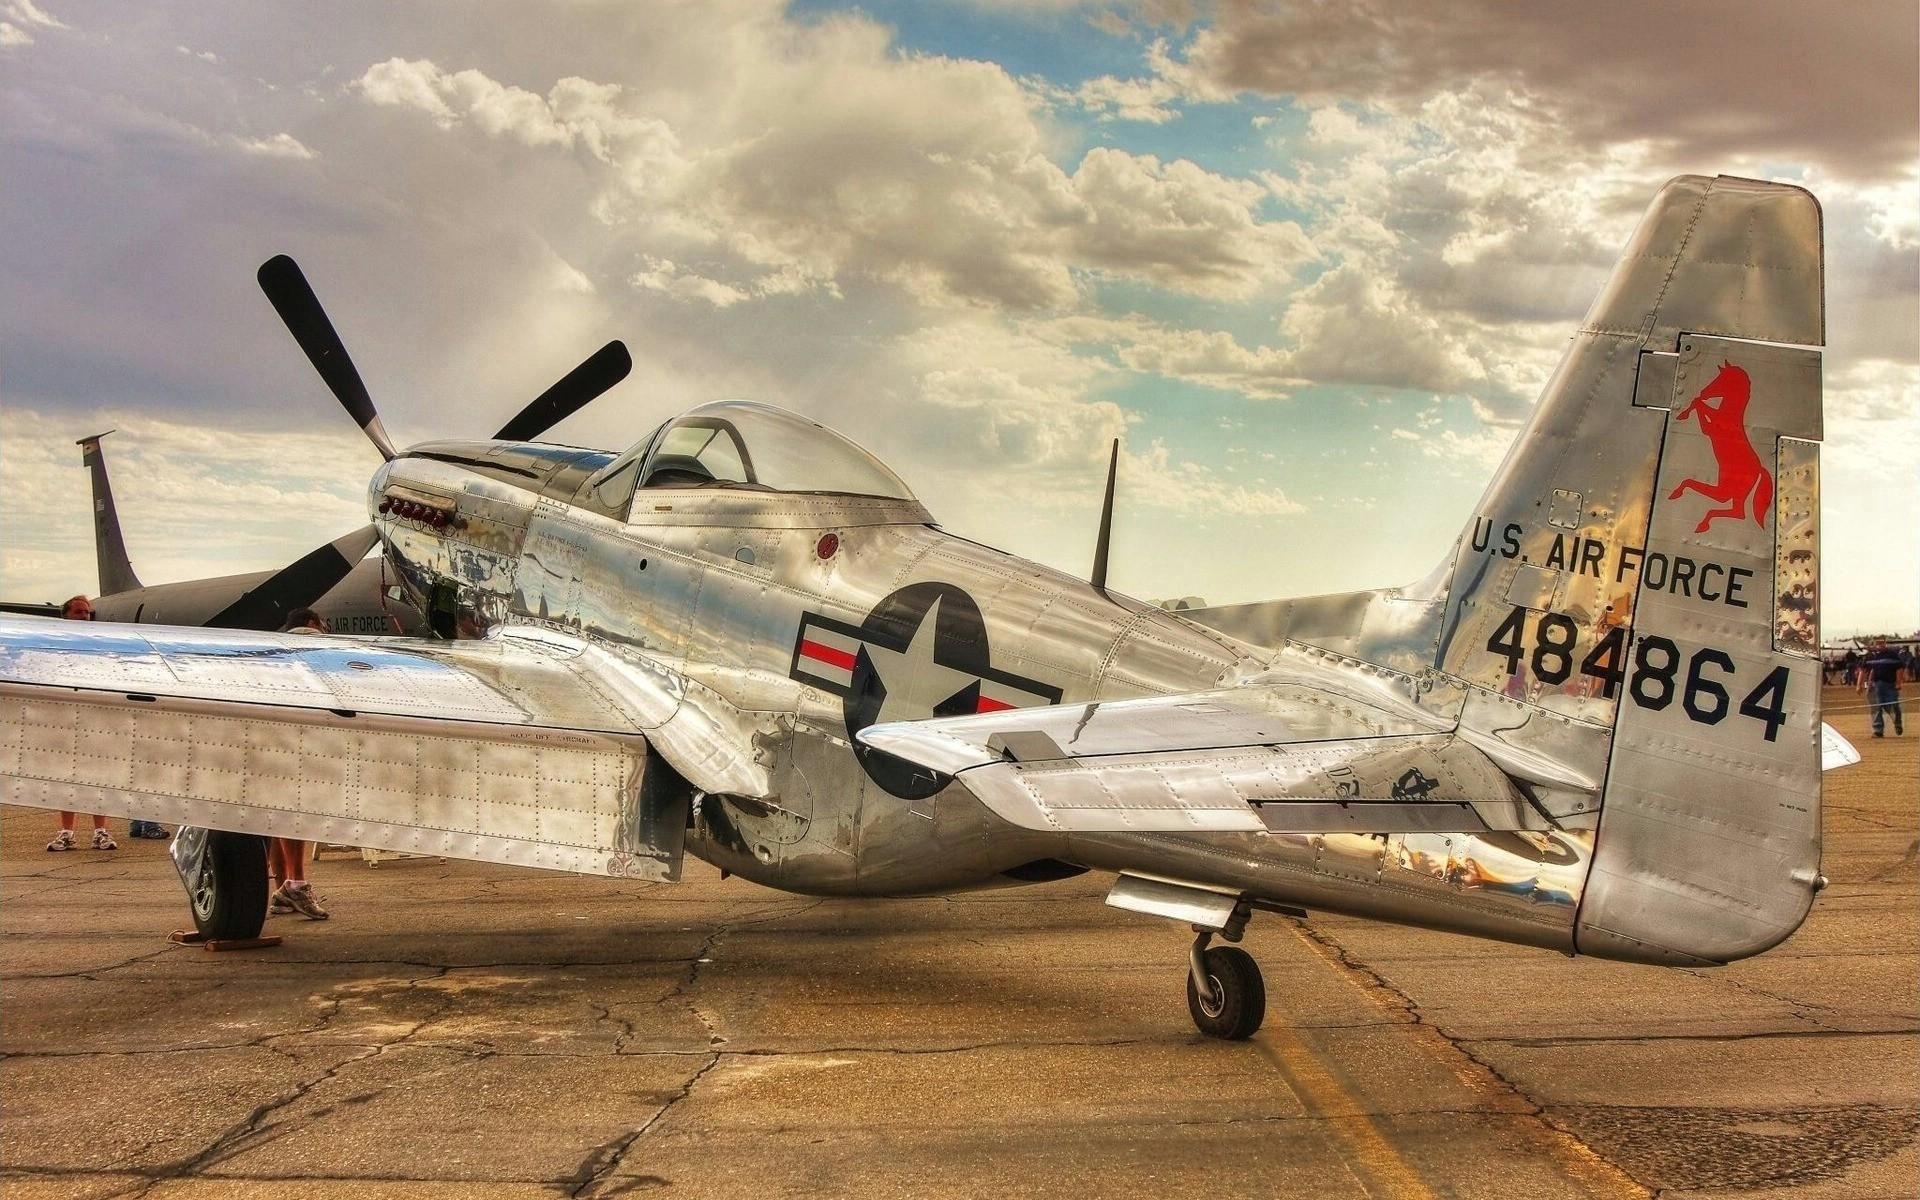 download vintage aviation wallpaper free #ub0l9 1920x1200 px